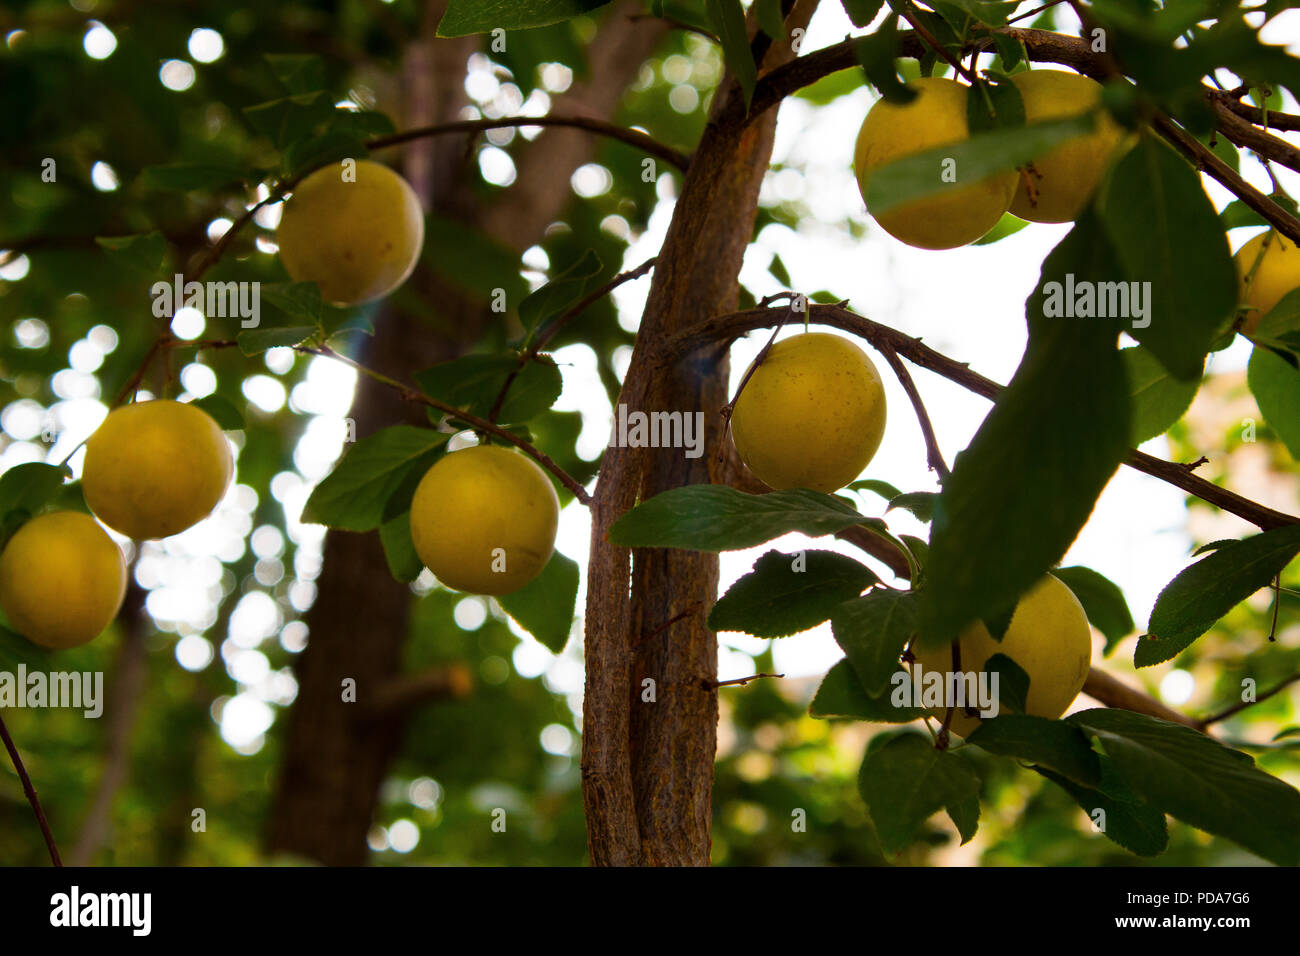 Plum-tree branch with plum .this is Plum garden and the fruit trees ...